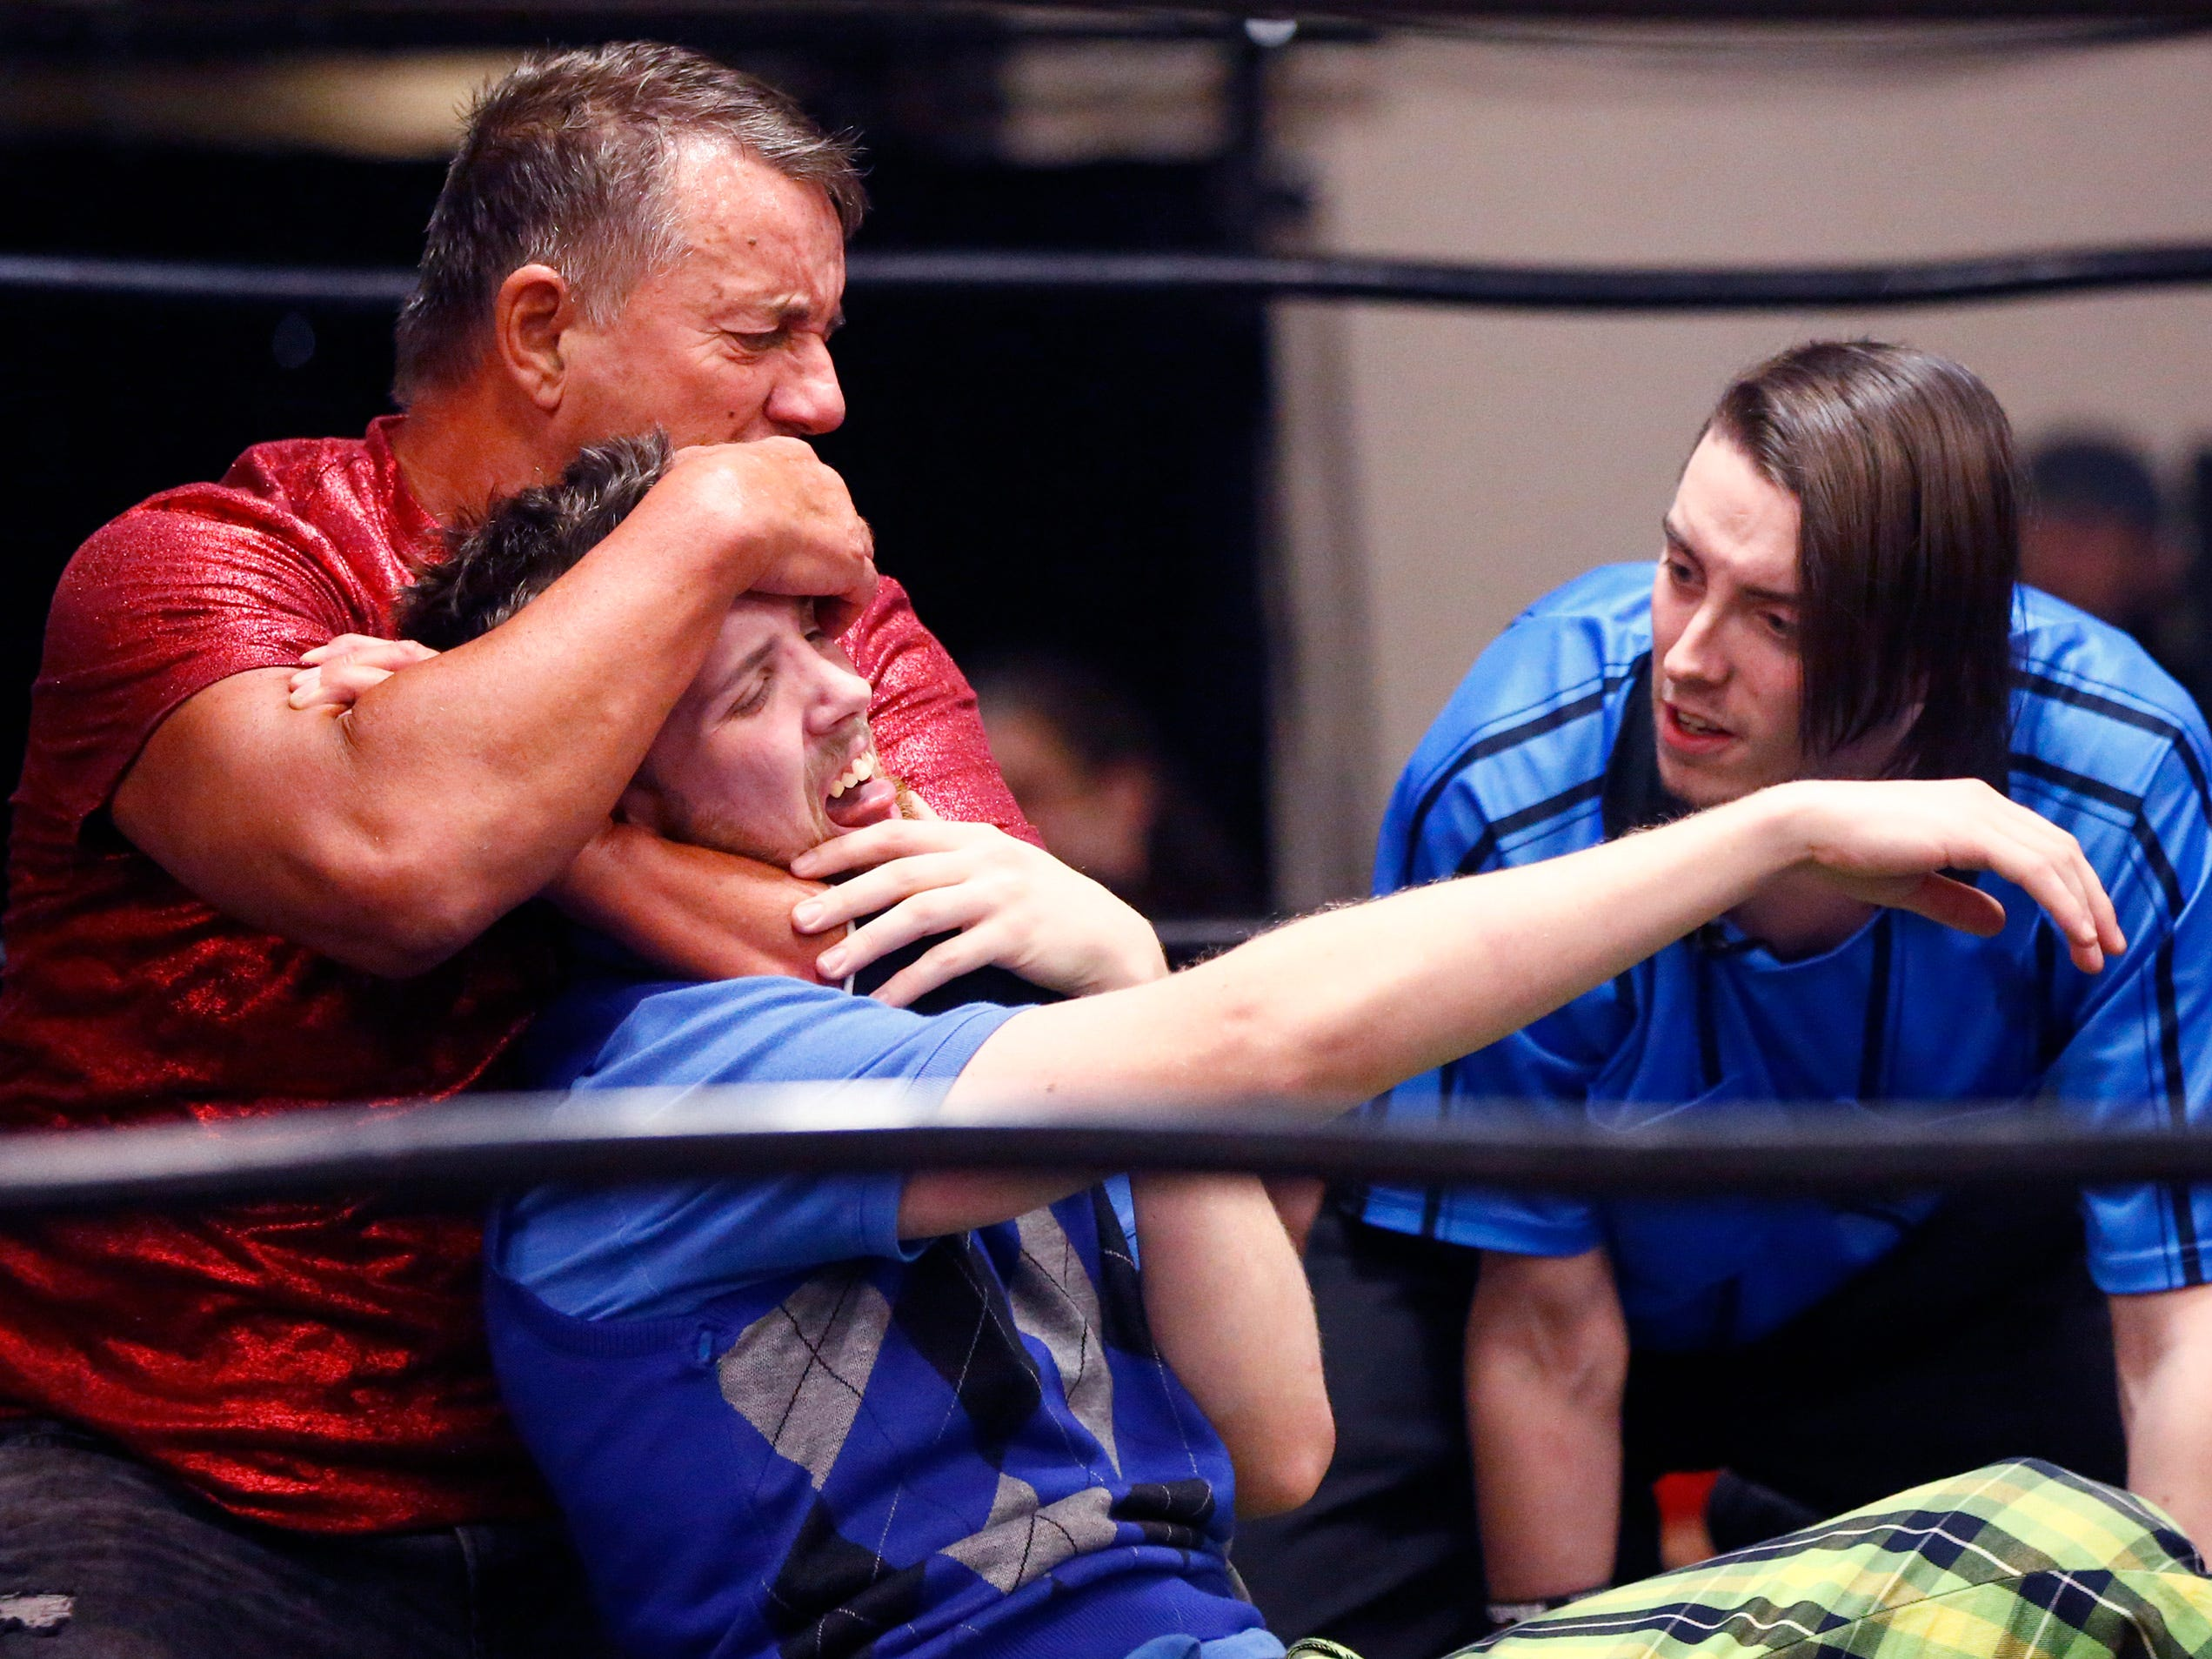 """Angel Armani puts Lou Zhur into a headlock during the Brew City Wrestling """"Rise To Honor XV- 15 Years of FAN-demonium"""" event at the Waukesha Elks Lodge on Jan. 11 that featured seven matches during the evening."""